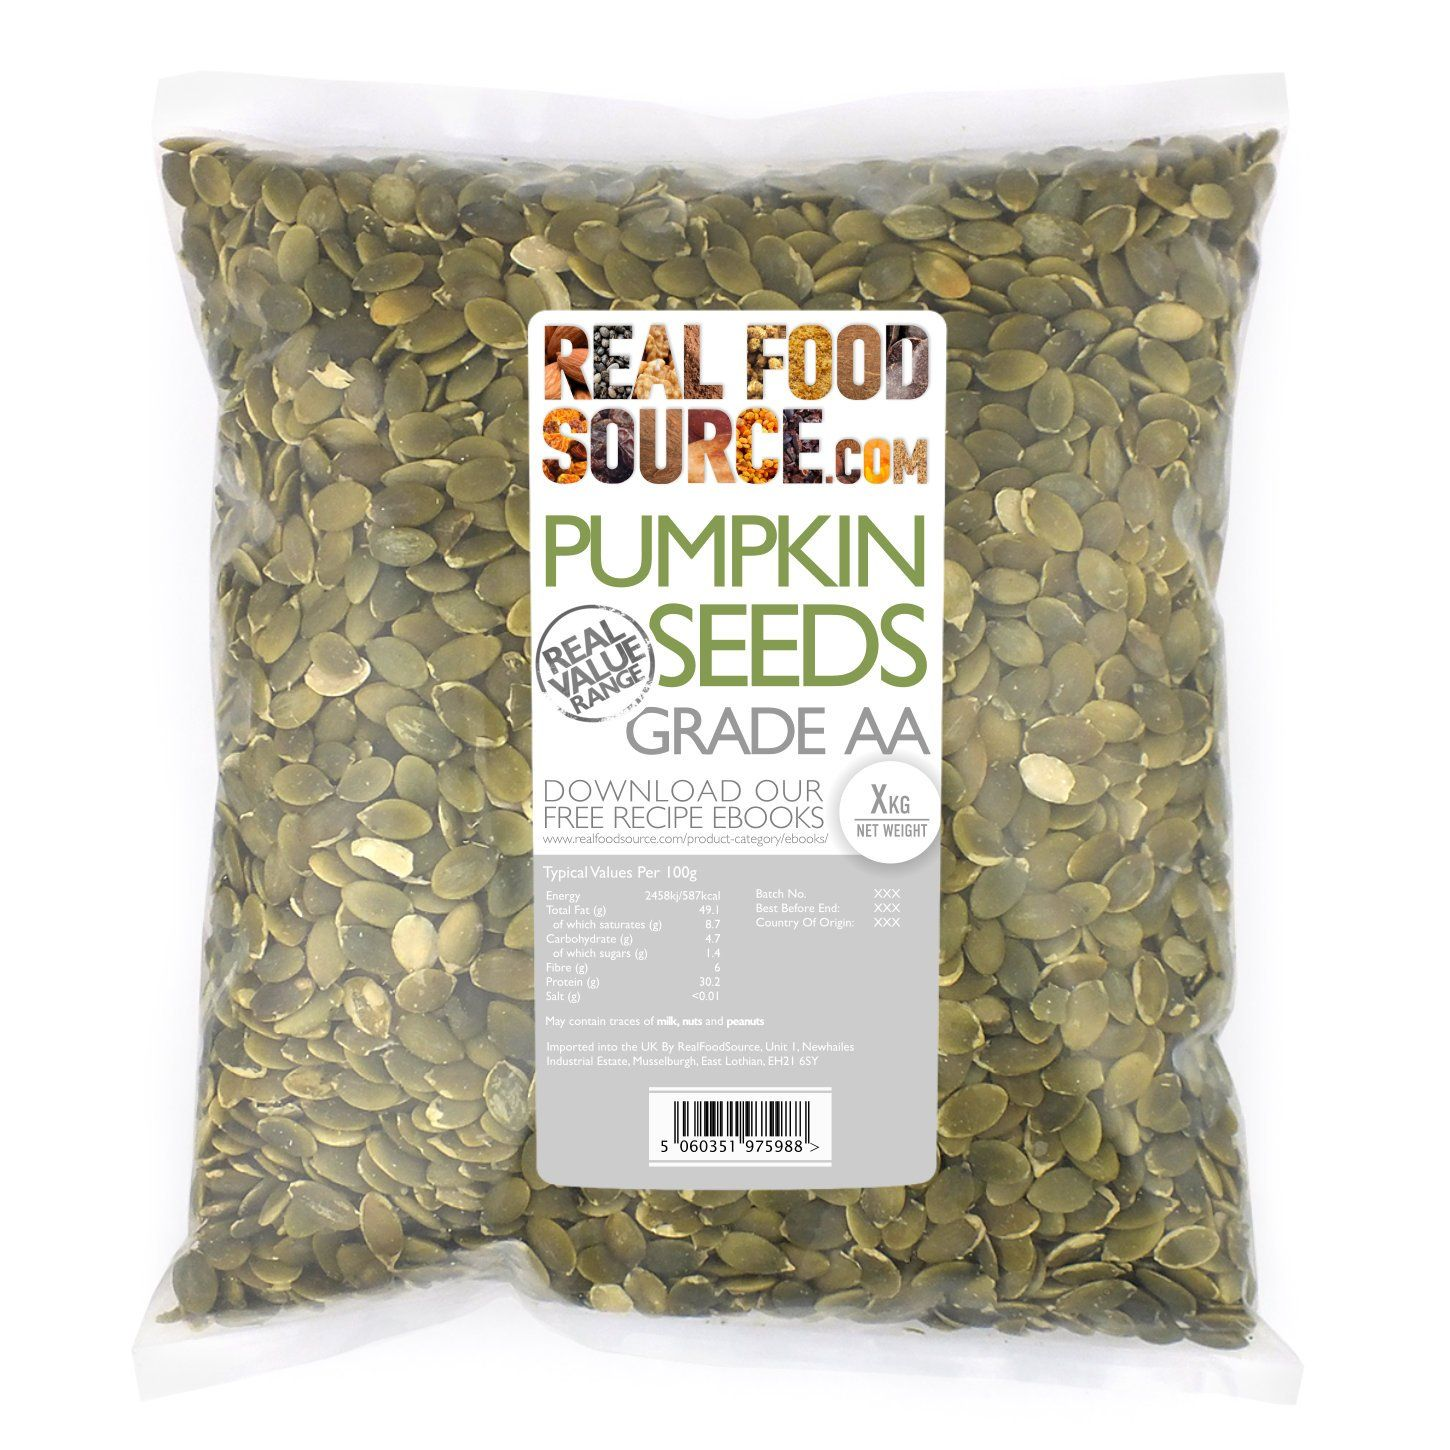 Realfoodsource Pumpkin Seeds Grade Aa 1kg Amazon Co Uk Amazon